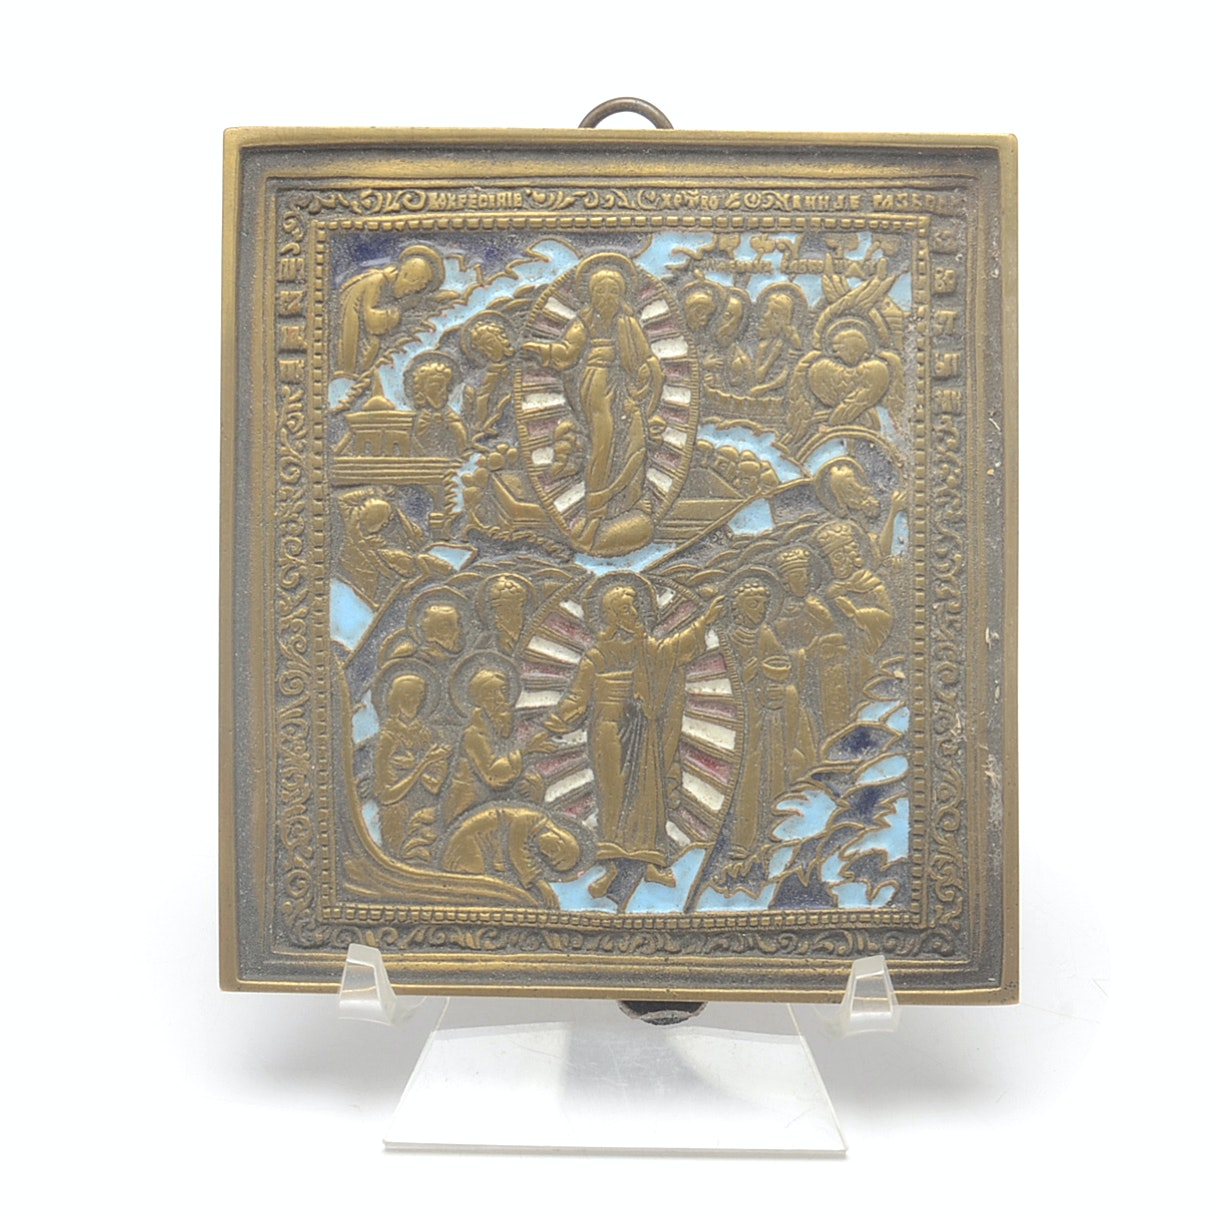 Vintage Brass Religious Wall Plaque